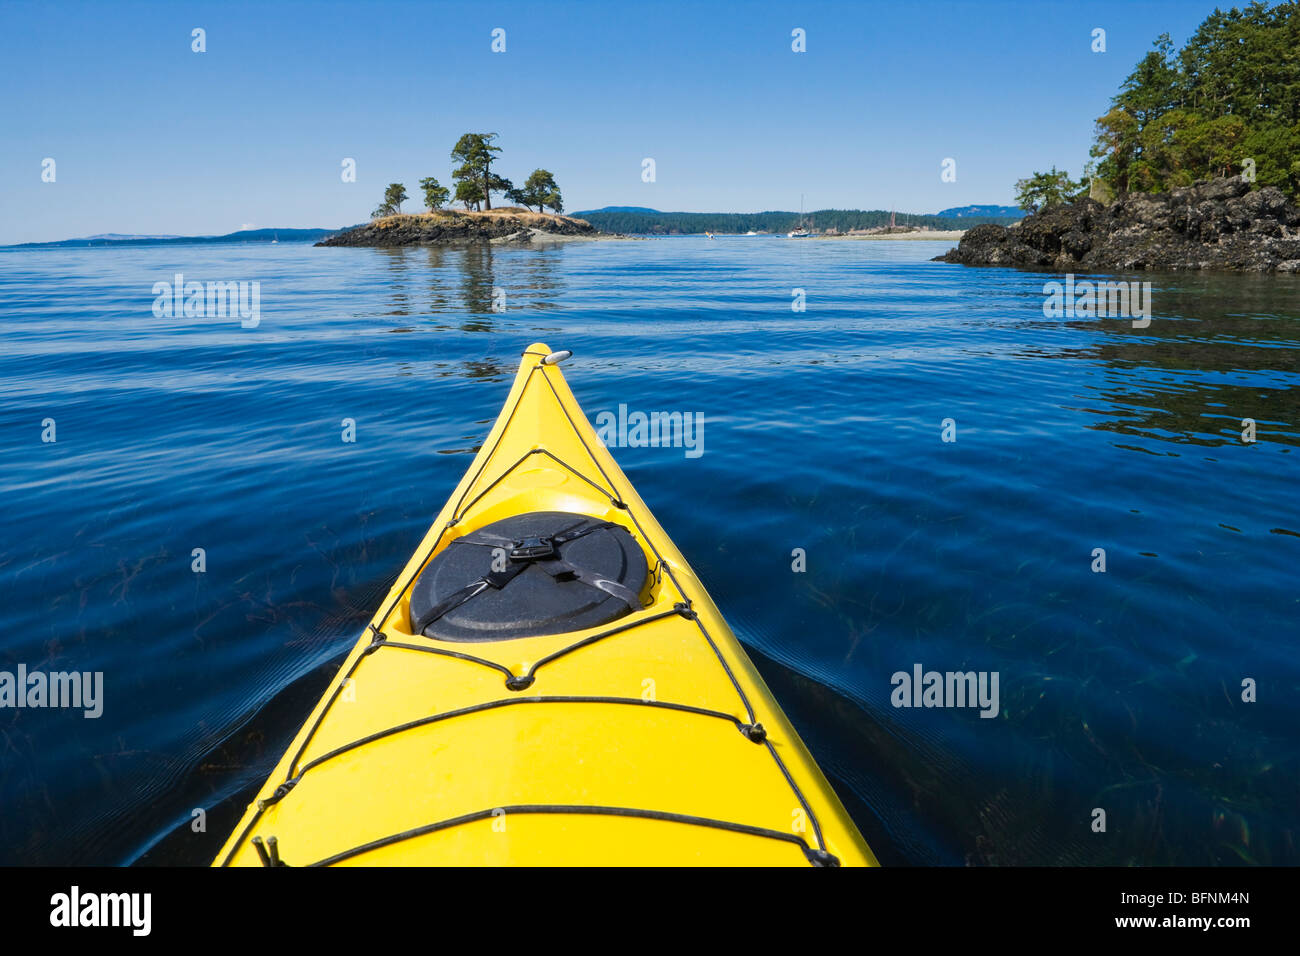 The bow of a sea kayak on the water near Turn Island in the San Juan Islands of Washington State, USA. - Stock Image